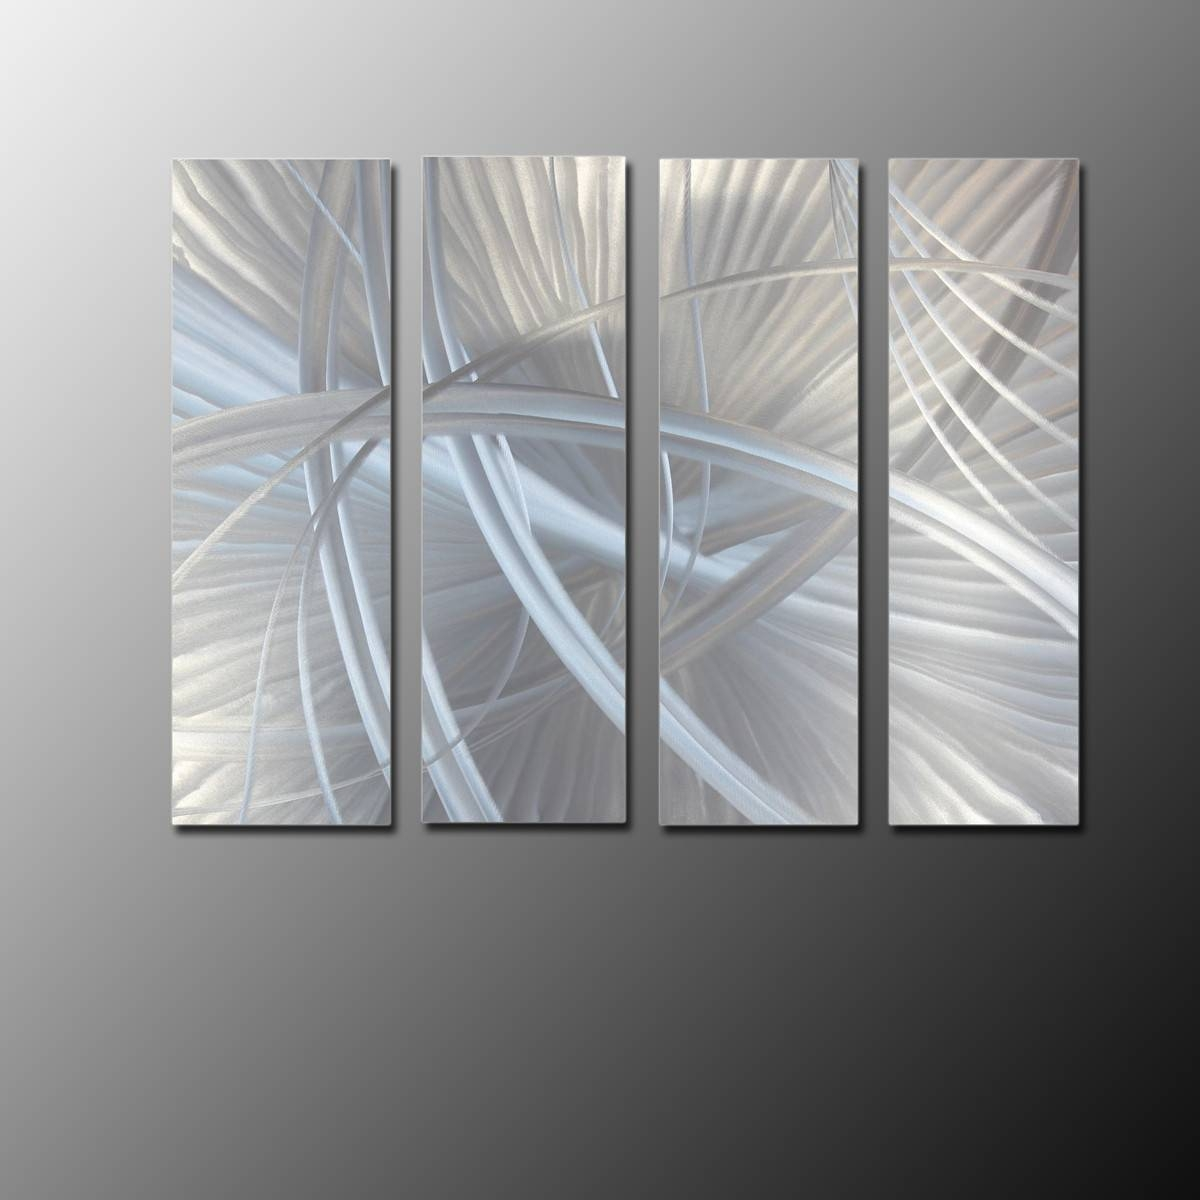 Three Panel Wall Design Inspiration Panel Wall Art – Home Design Ideas In Most Recent Three Panel Wall Art (View 18 of 20)